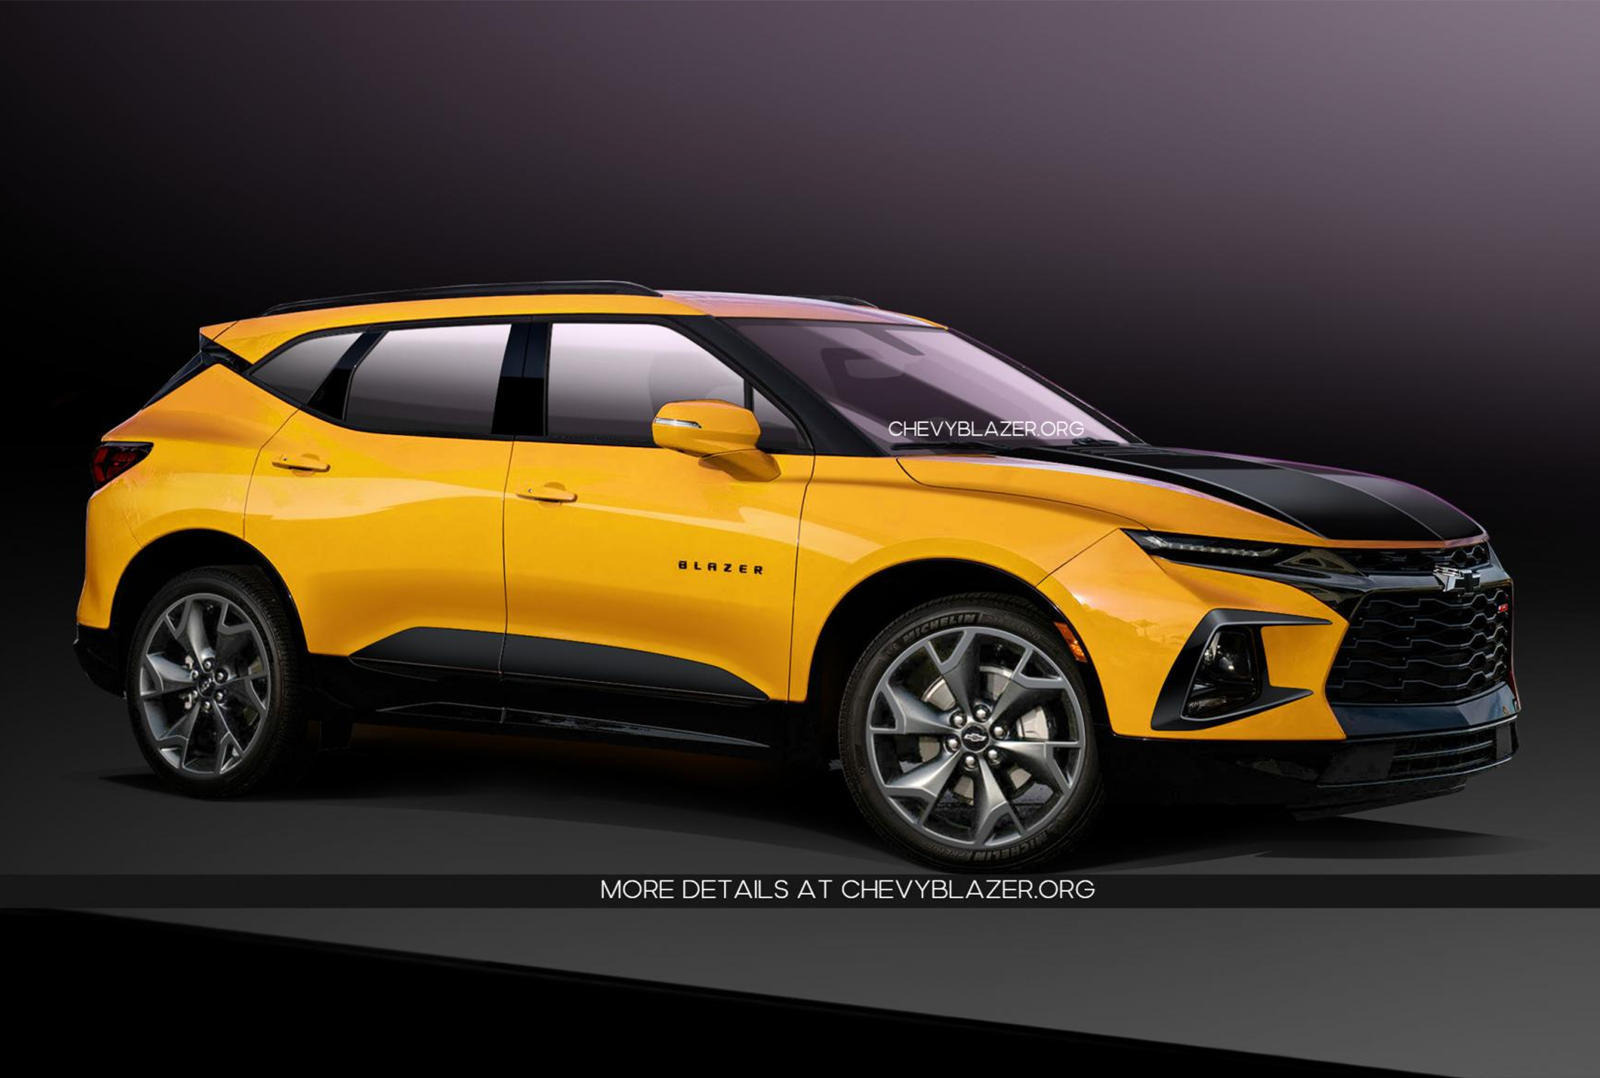 Chevrolet Blazer Ss To Debut At New York With 400 Hp   Carbuzz 2022 Chevy Blazer Ss Msrp, Near Me, Horsepower